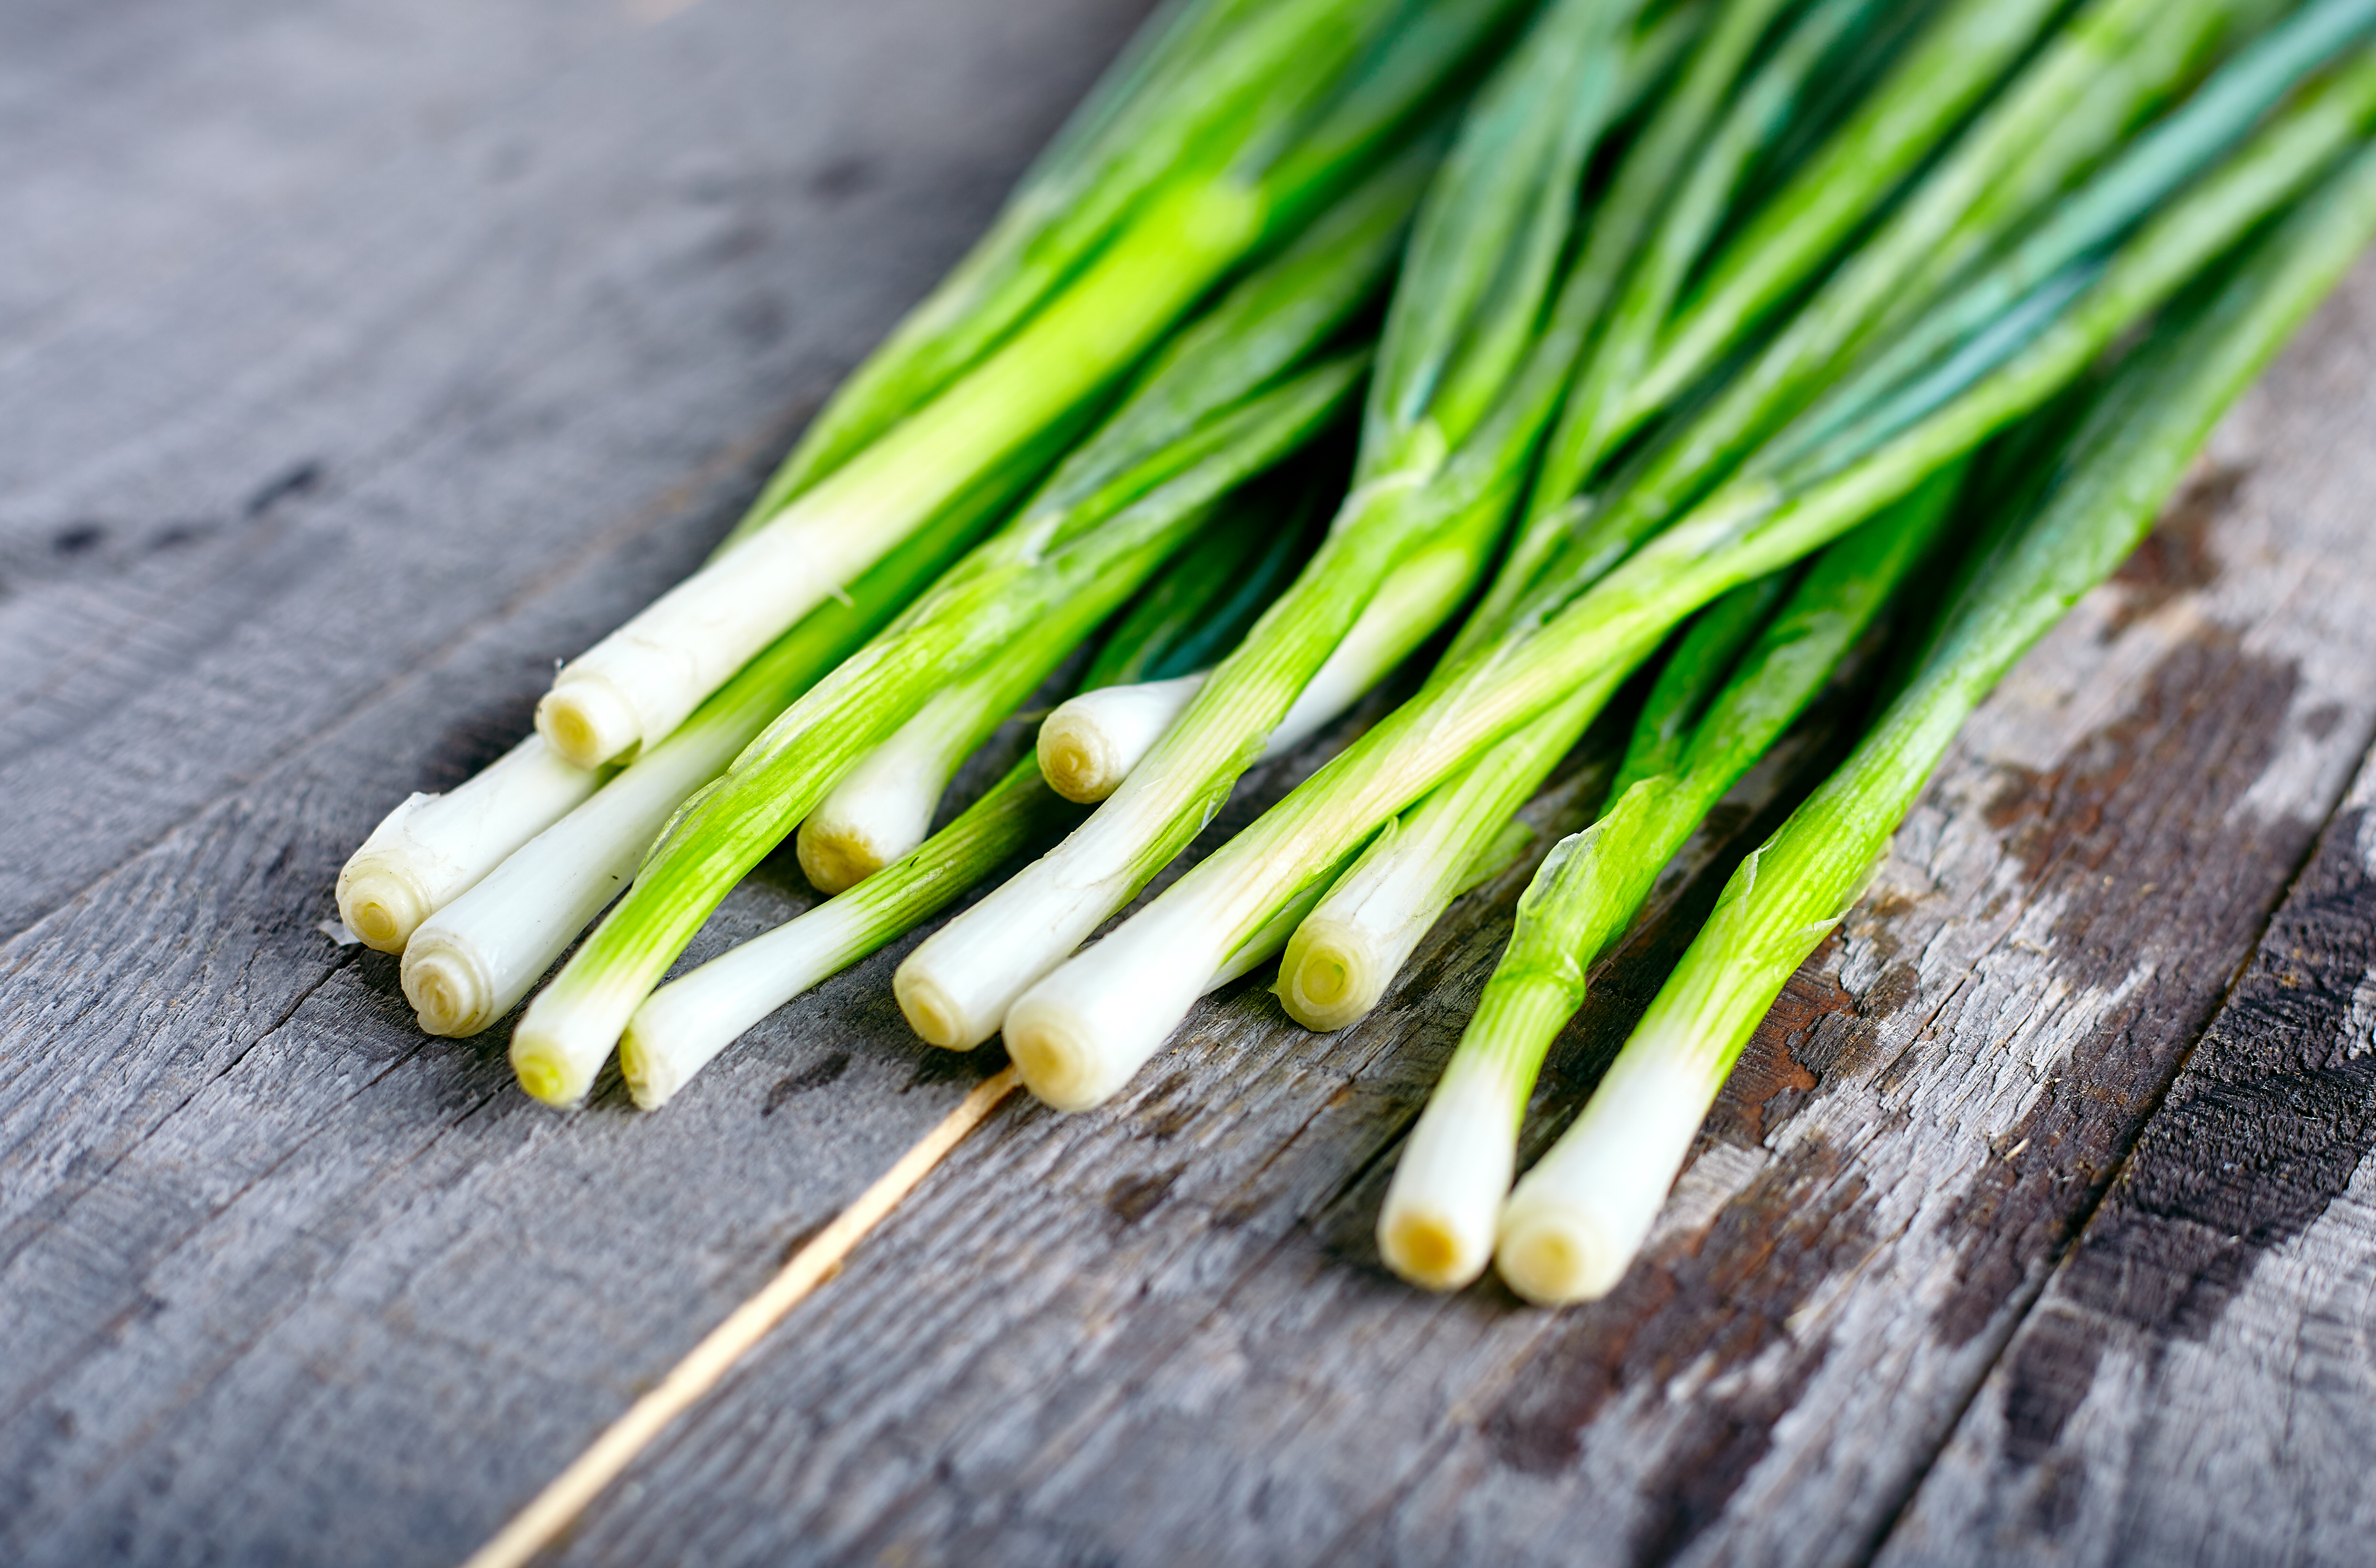 what parts of a green onion can you eat? | healthy eating